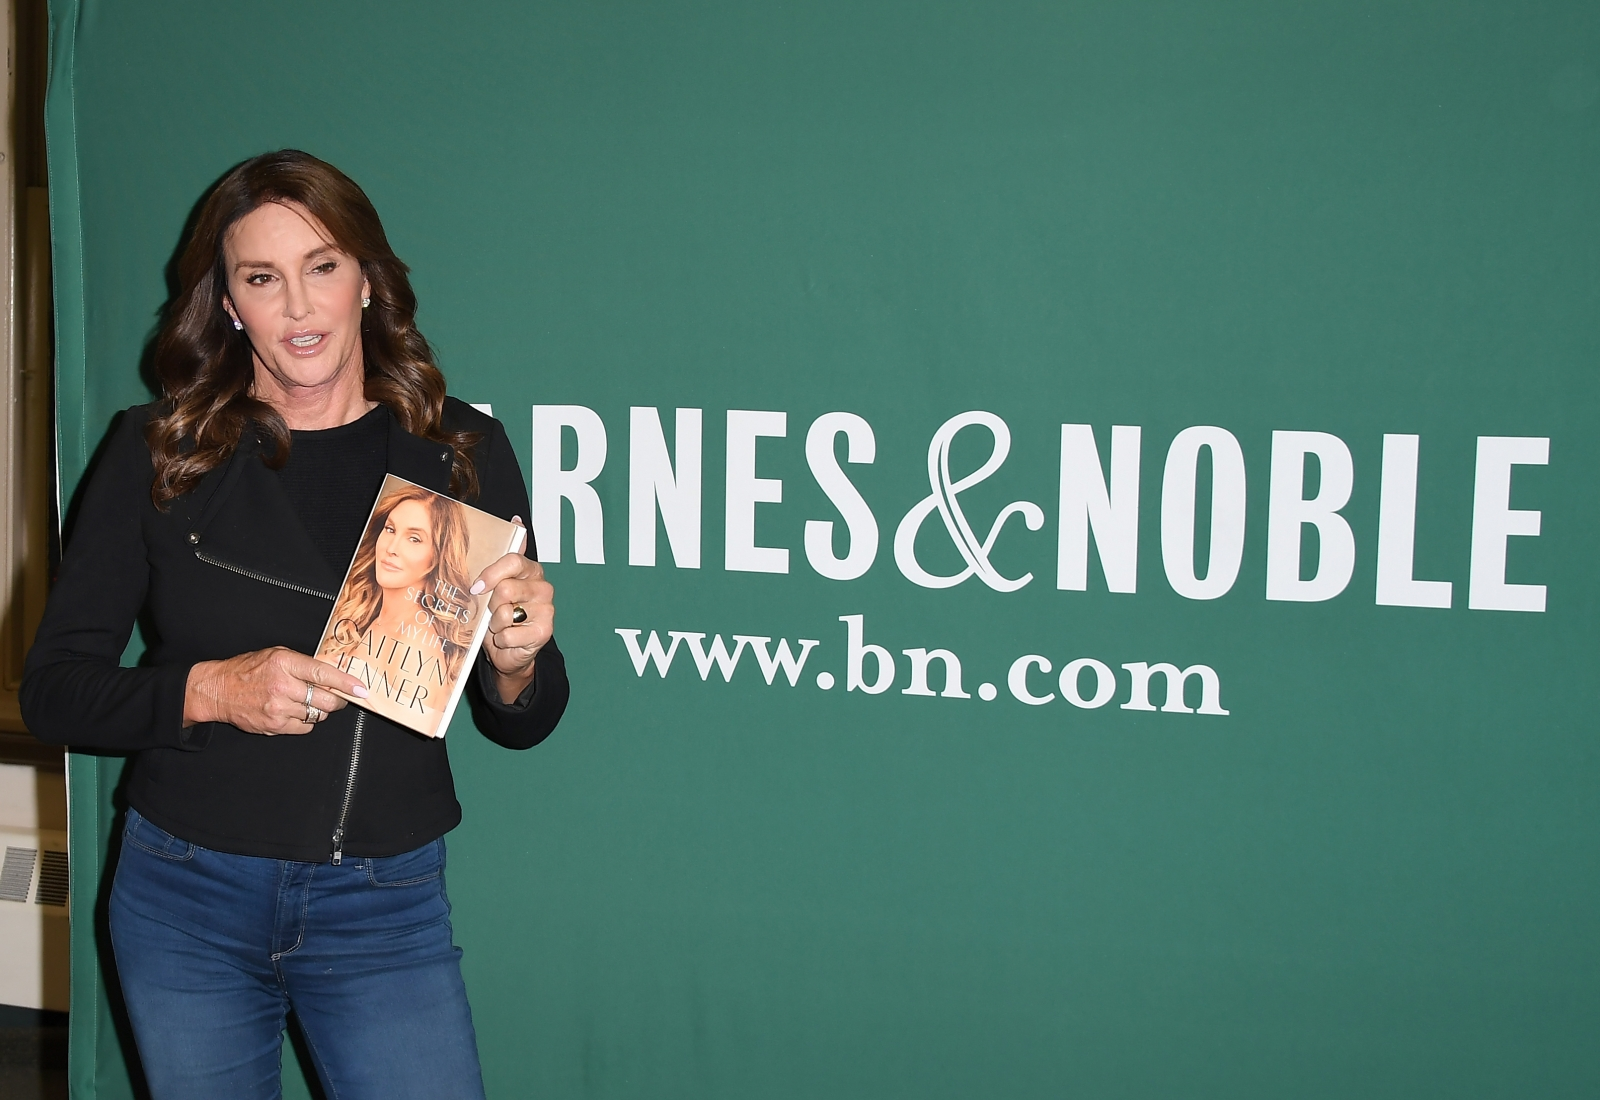 Caitlyn Jenner: 'I would be shocked if my children transitioned'